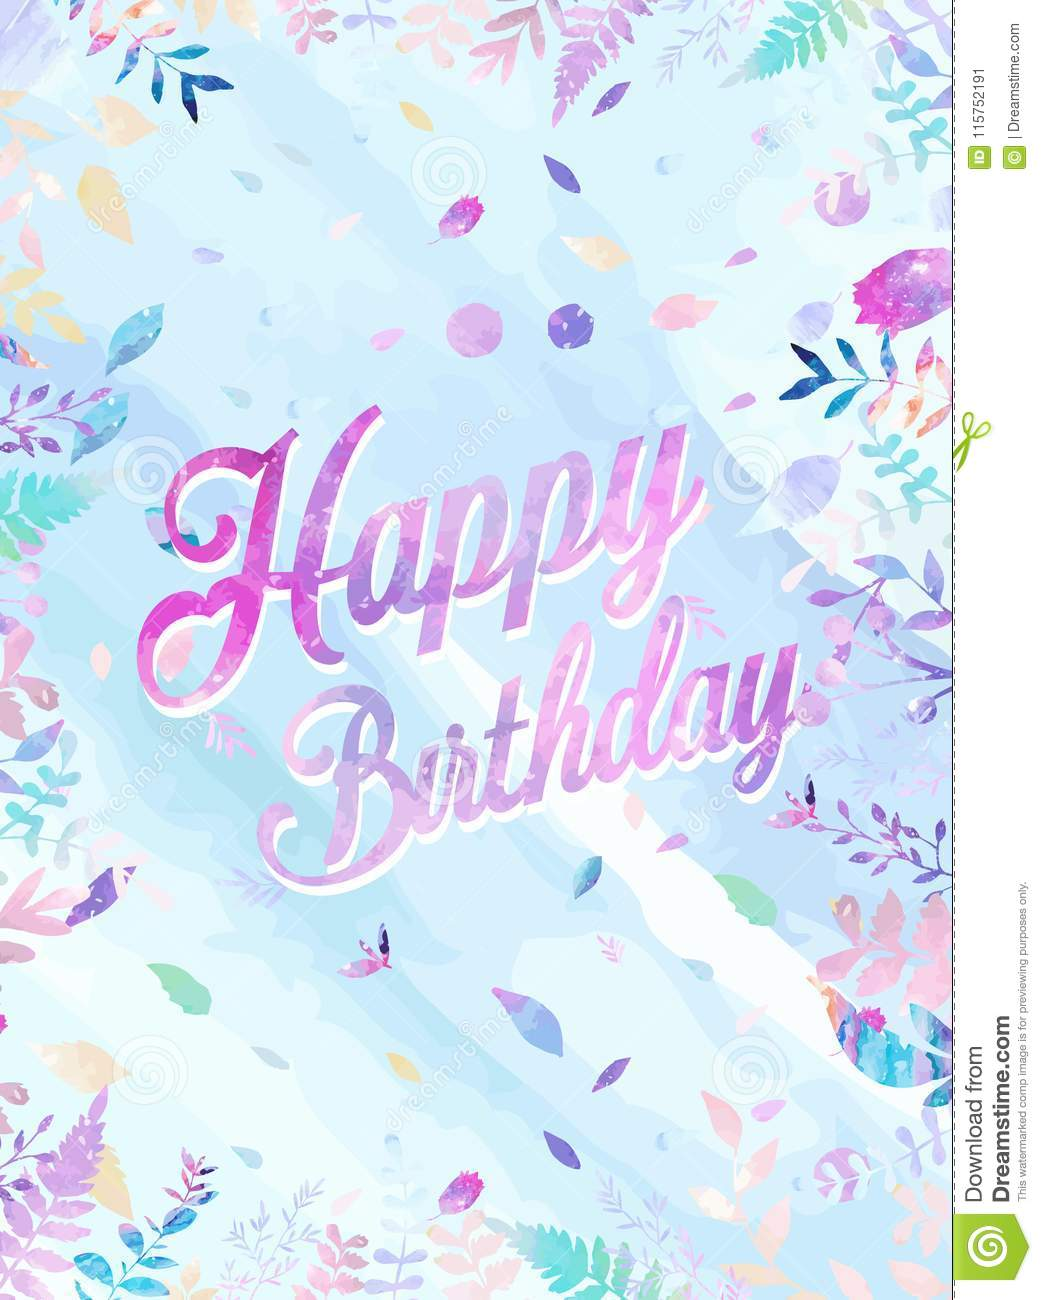 happy birthday background vector illustration with watercolor style for someone special birthday soft cold color